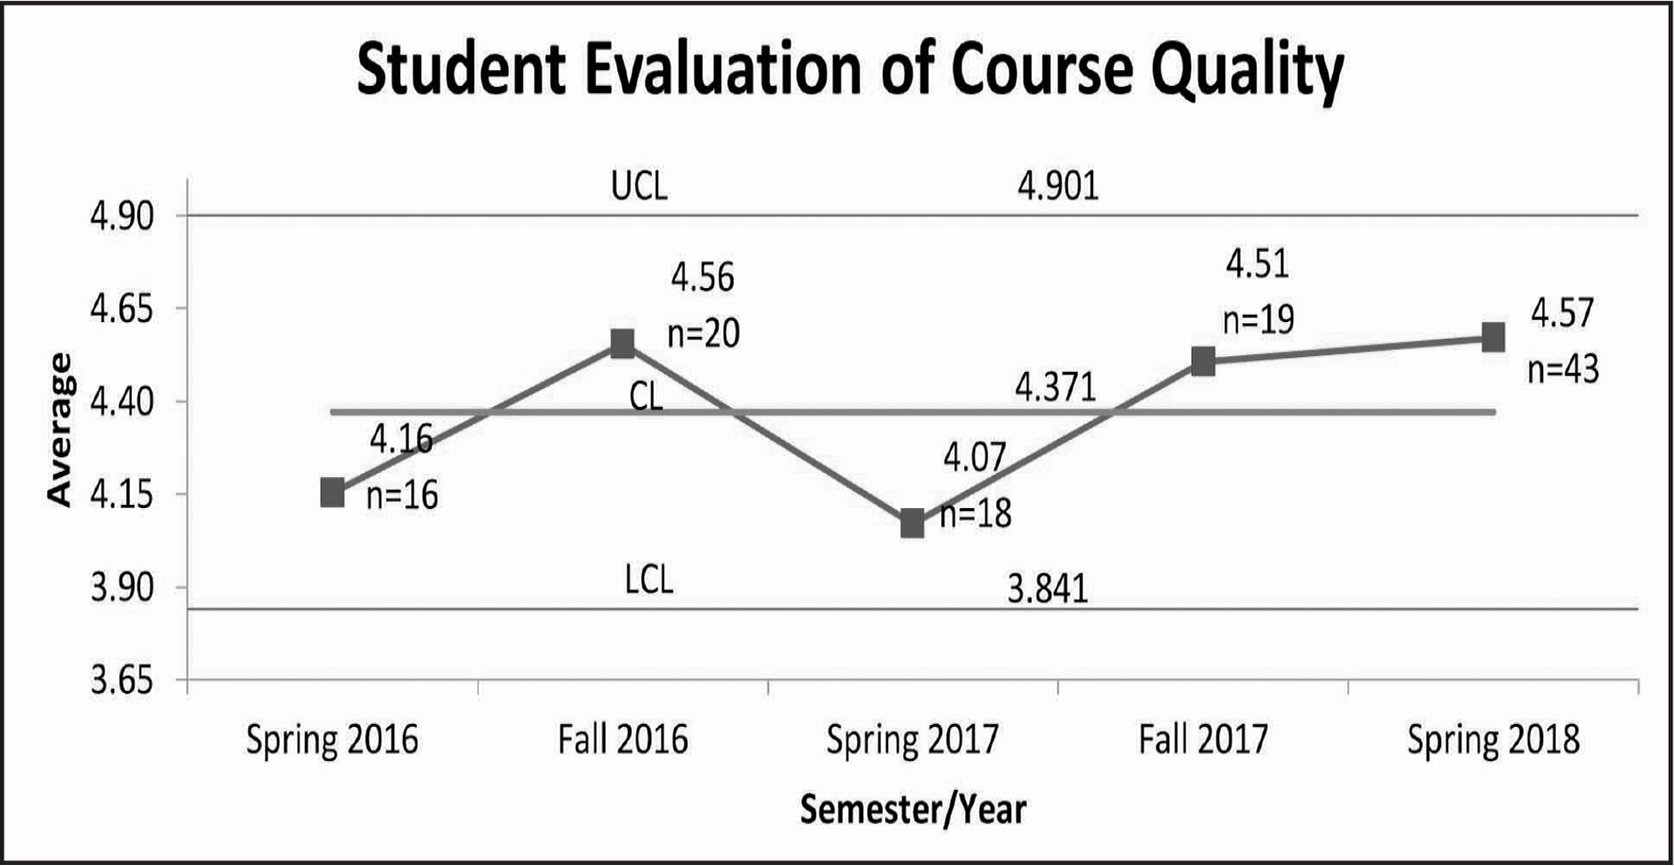 "Student evaluations (""Rate the quality of the course."") are reported on a 1 (poor) to 5 (excellent) scale. The course has a lecture and practicum, separately evaluated and shown as an average in the control chart. Response rates ranged from 47% to 65% (mean = 54%; SD = 8%) of all enrolled students. CL (central line) is the mean; UCL (upper control limit) and LCL (lower control limit) indicate that score variation is due to common cause and the process is in control."